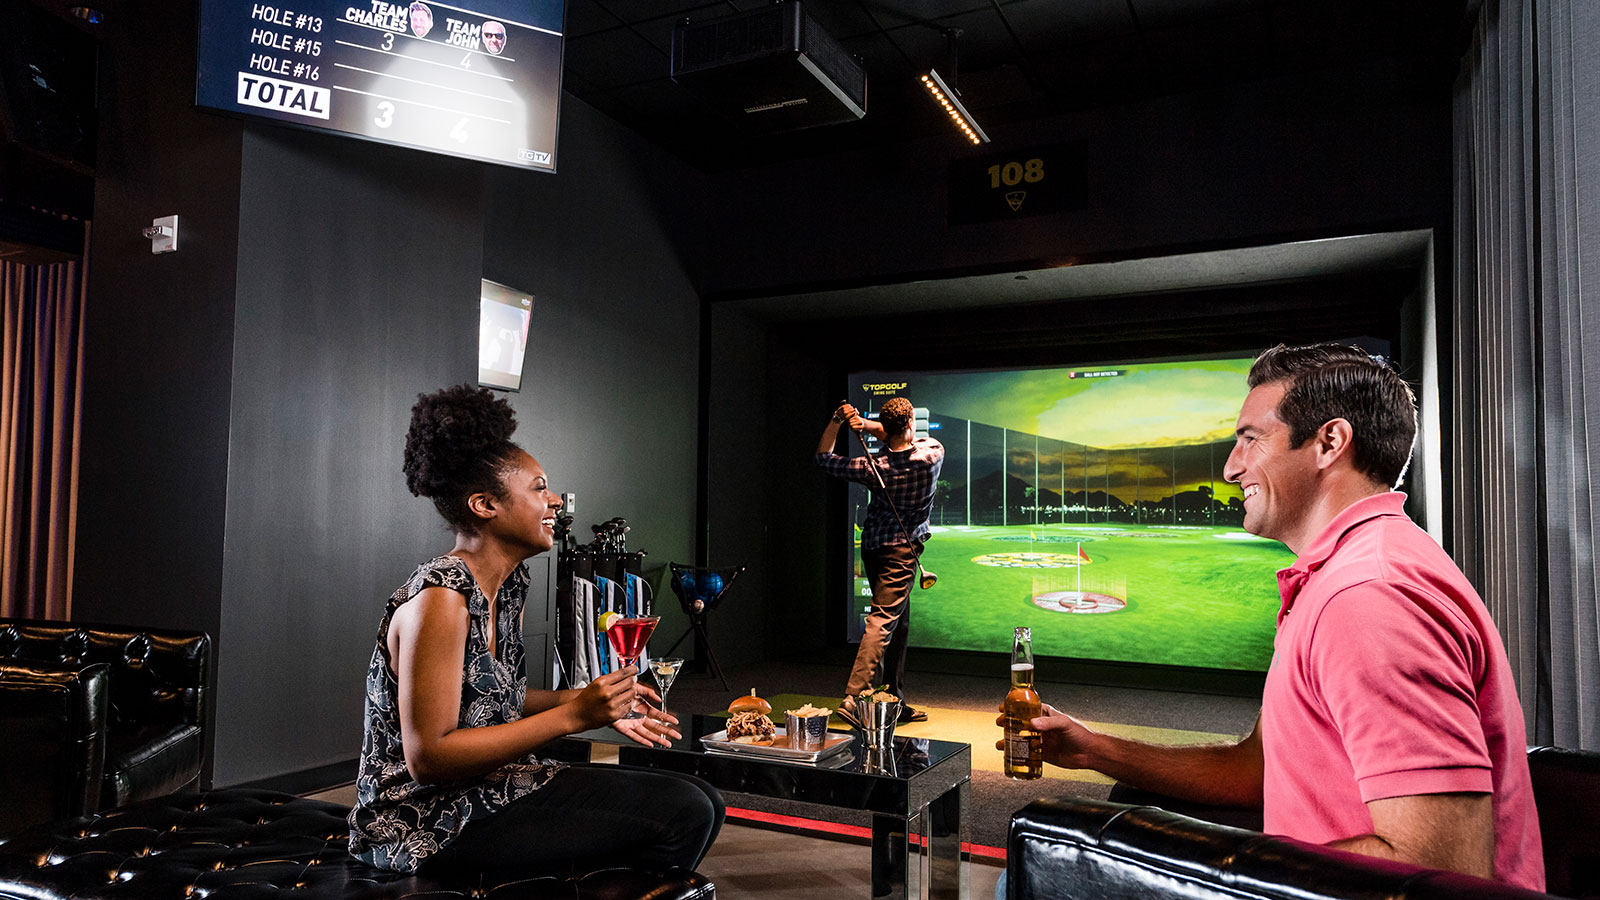 Man in pink colored golf shirt holds a beer across from woman in patterned tank top holds a cocktail and man behind swing golf club while playing TopGolf Swing Suite